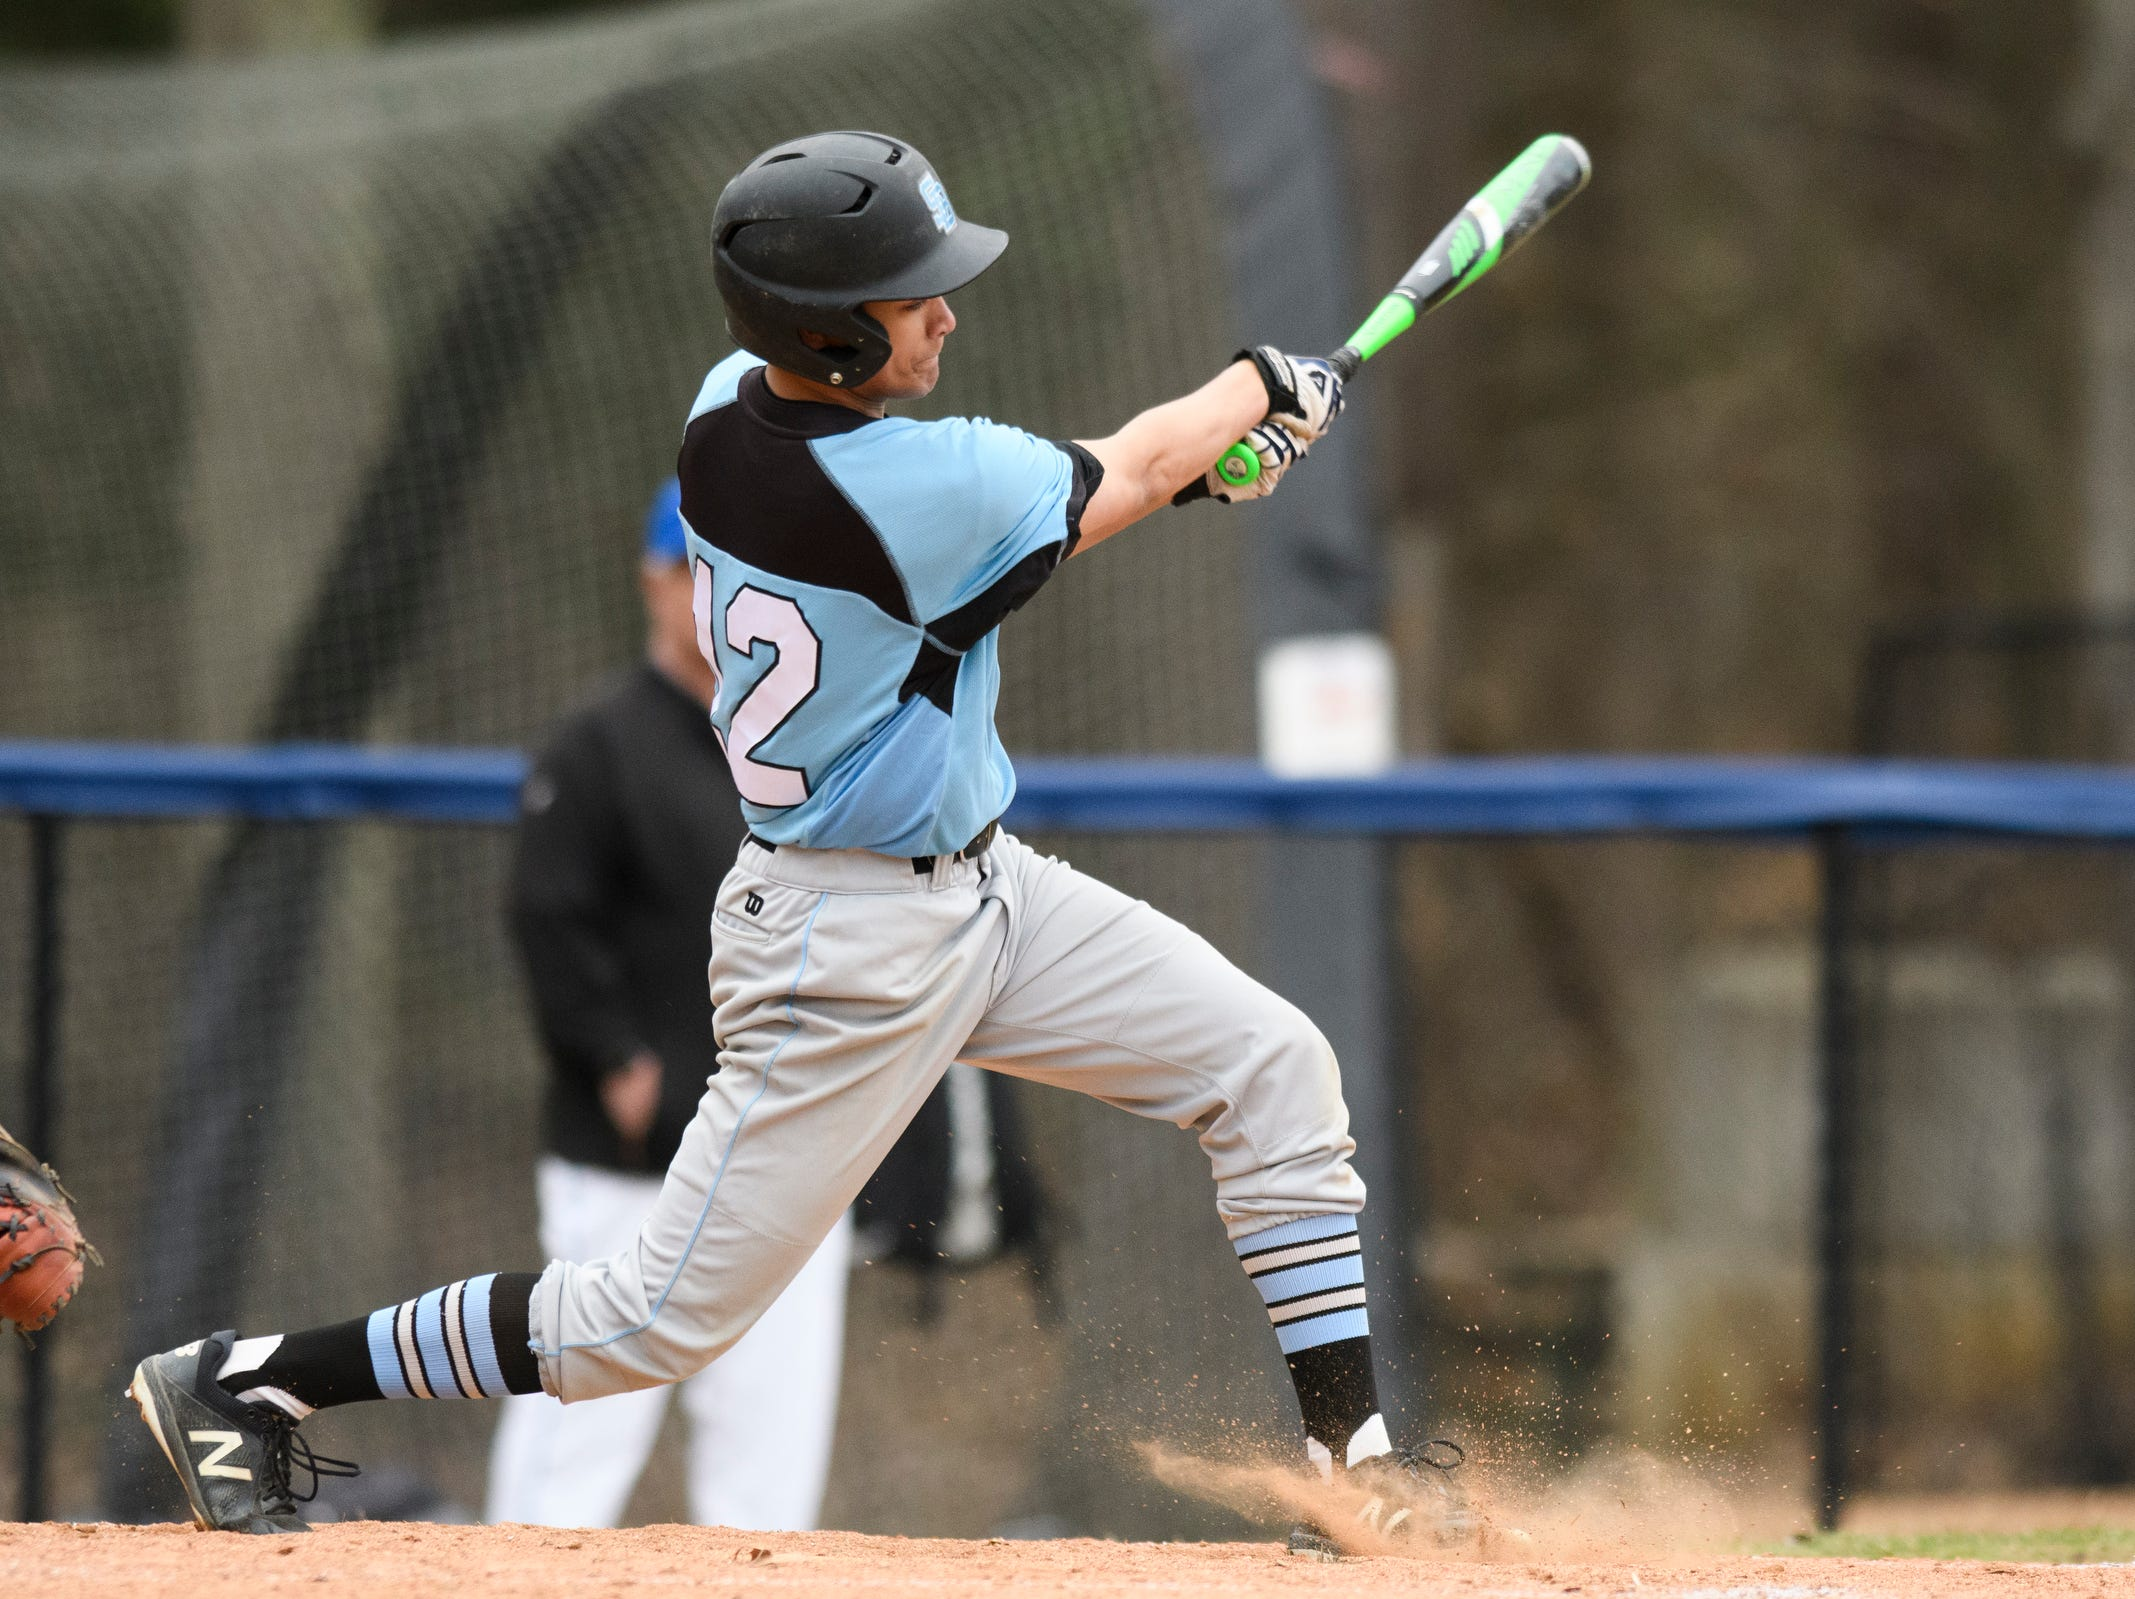 South Burlington's Gabe Frigo (12) hits the ball during the boys baseball game between the South Burlington Wolves and the Colchester Lakers at Colchester high school on Thursday afternoon April 18, 2019 in Colchester, Vermont.